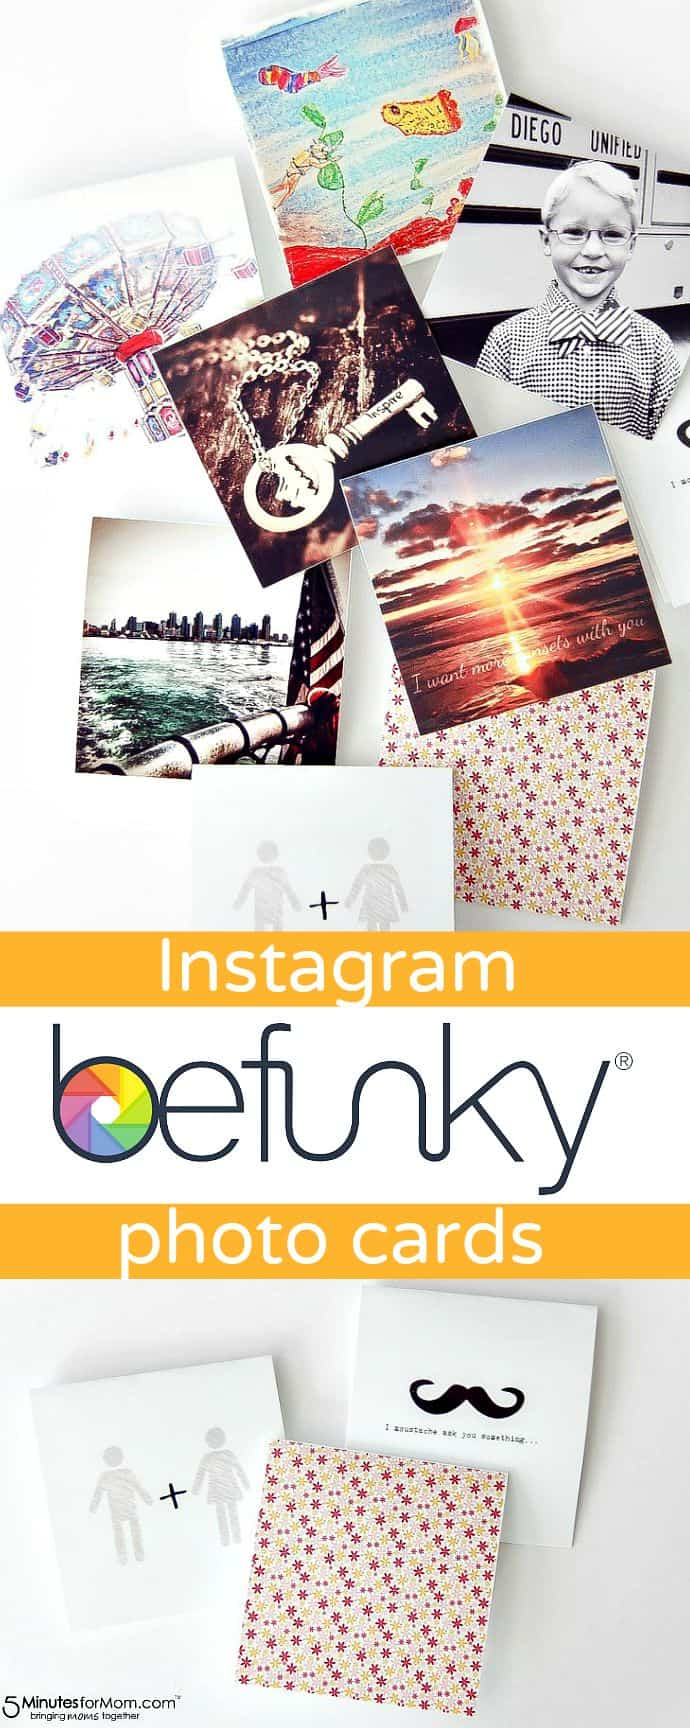 Create custom photo cards from Instagram photos using BeFunky photo editing